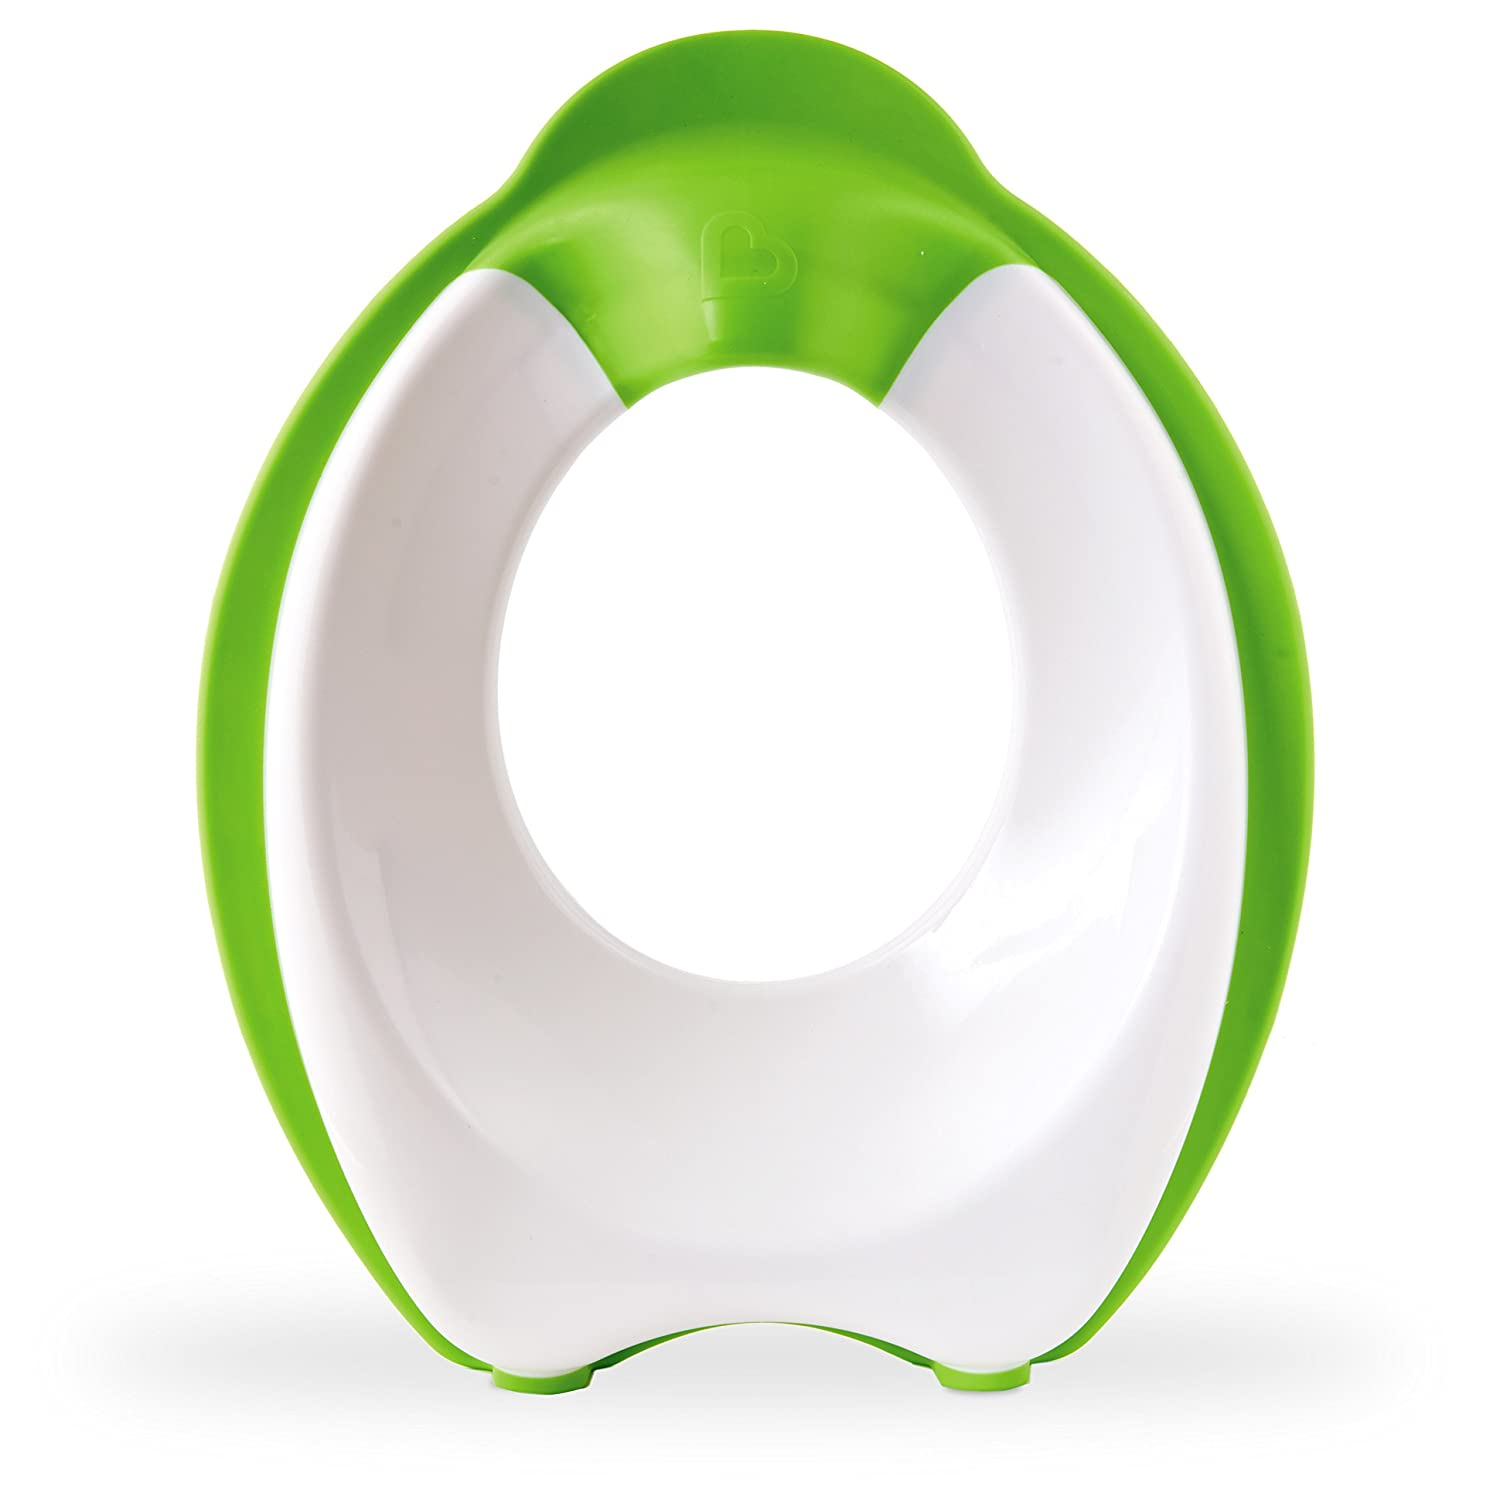 Munchkin Grip Potty Training Seat 15981